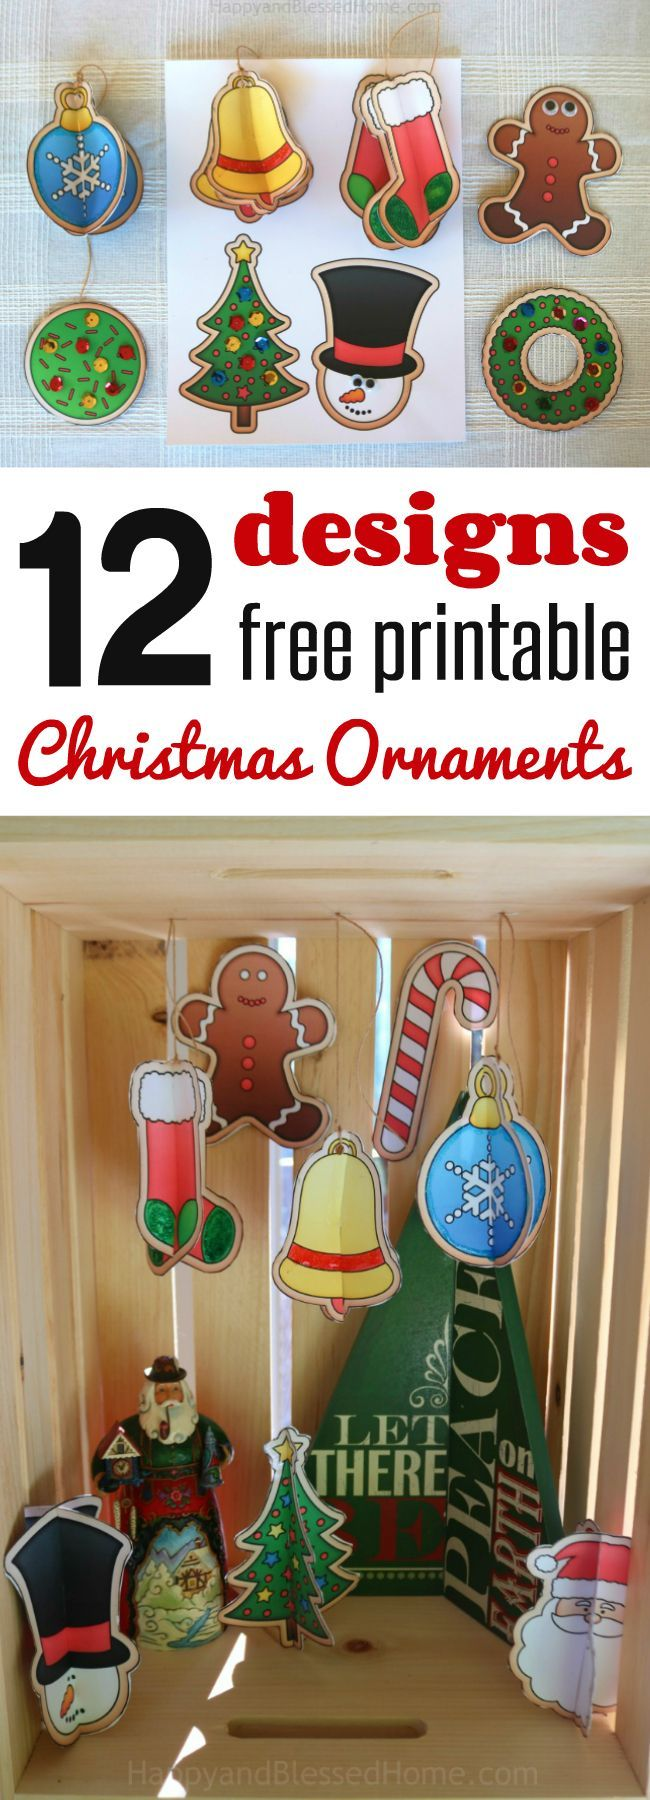 12 FREE Christmas Ornaments Printables And A Craft Tutorial